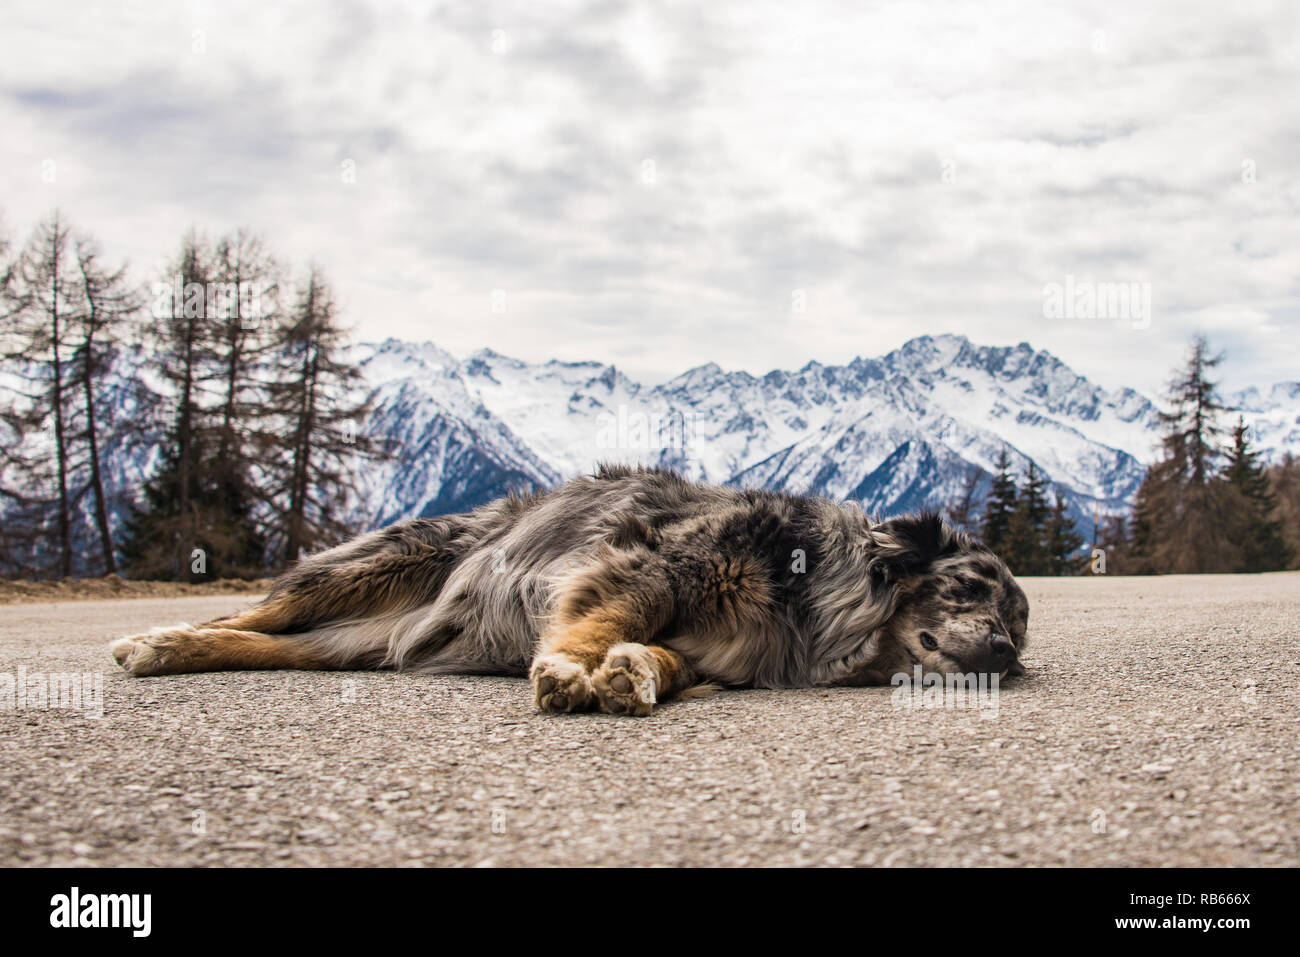 Dog sleeping on the asphalt road in Italian Alps - snow-capped mountains background. Ortisè, a small village, municipality of Mezzana, Trento Italy. - Stock Image